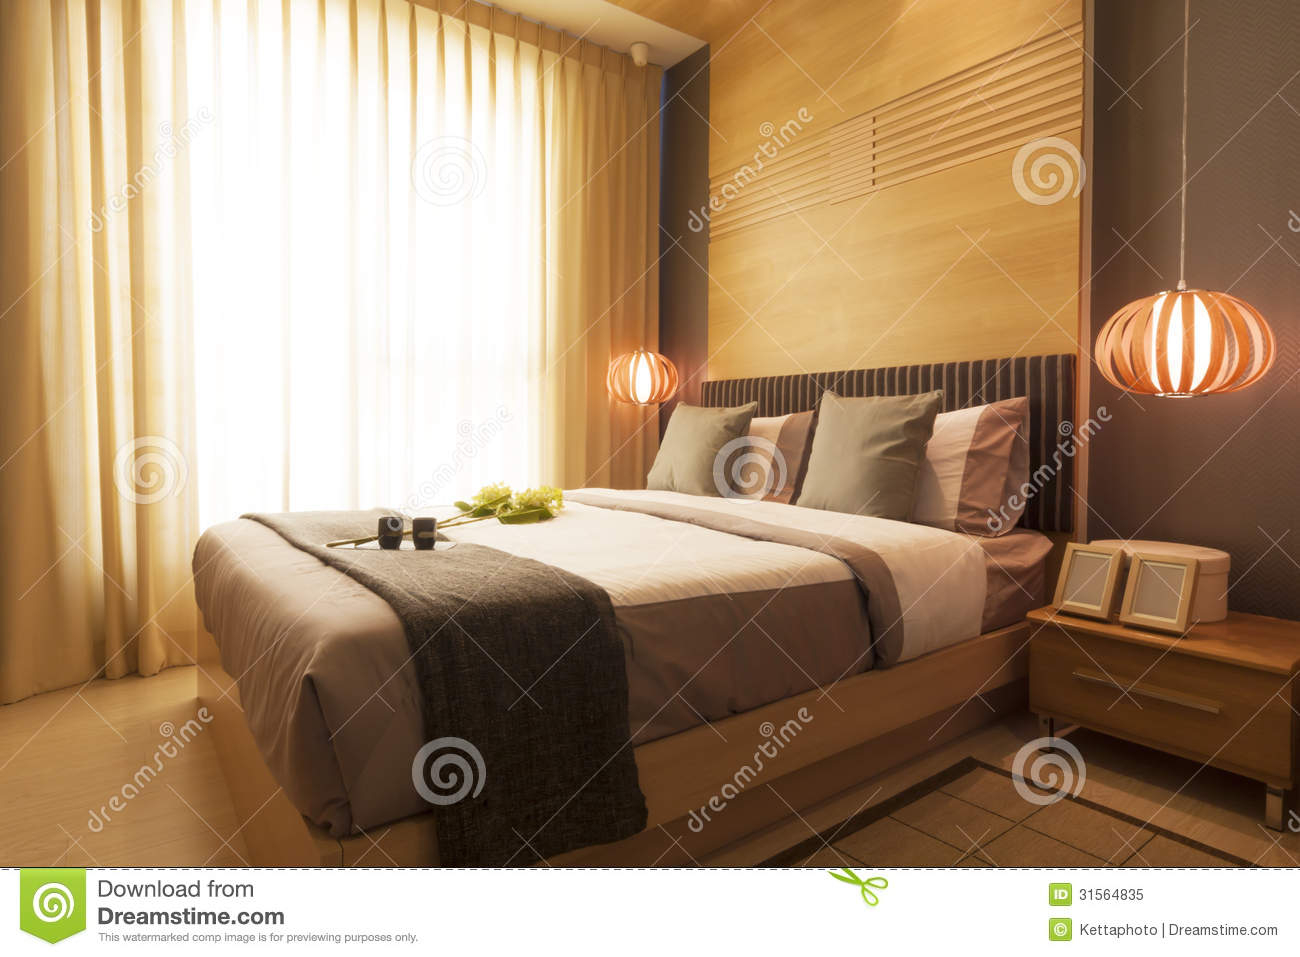 Luxury Modern Bedroom Stock Image Image Of Japanese 31564835 throughout 10 Some of the Coolest Designs of How to Improve Modern Japanese Bedroom